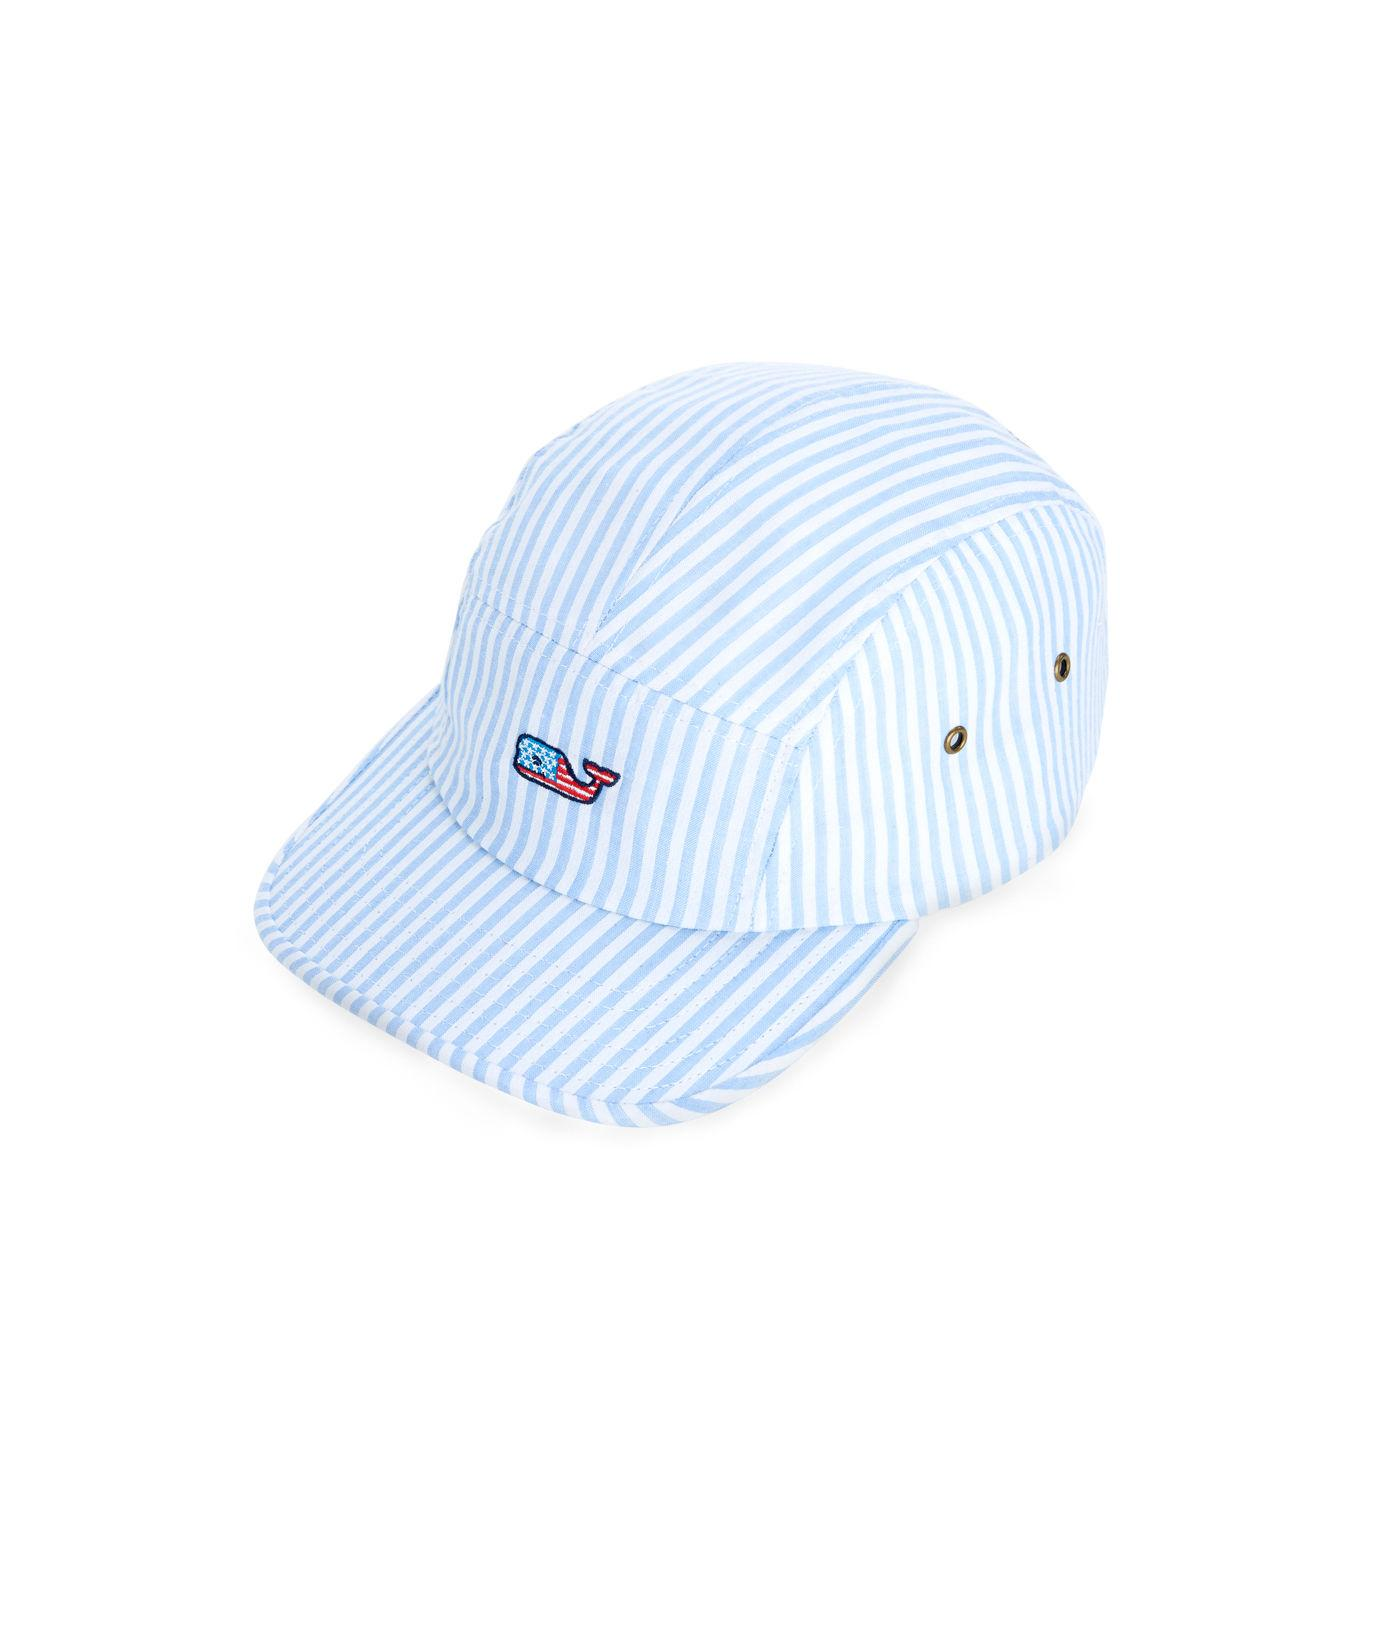 9f7e73ed10f Lyst - Vineyard Vines Seersucker Flag Whale Five Panel Hat in Blue ...